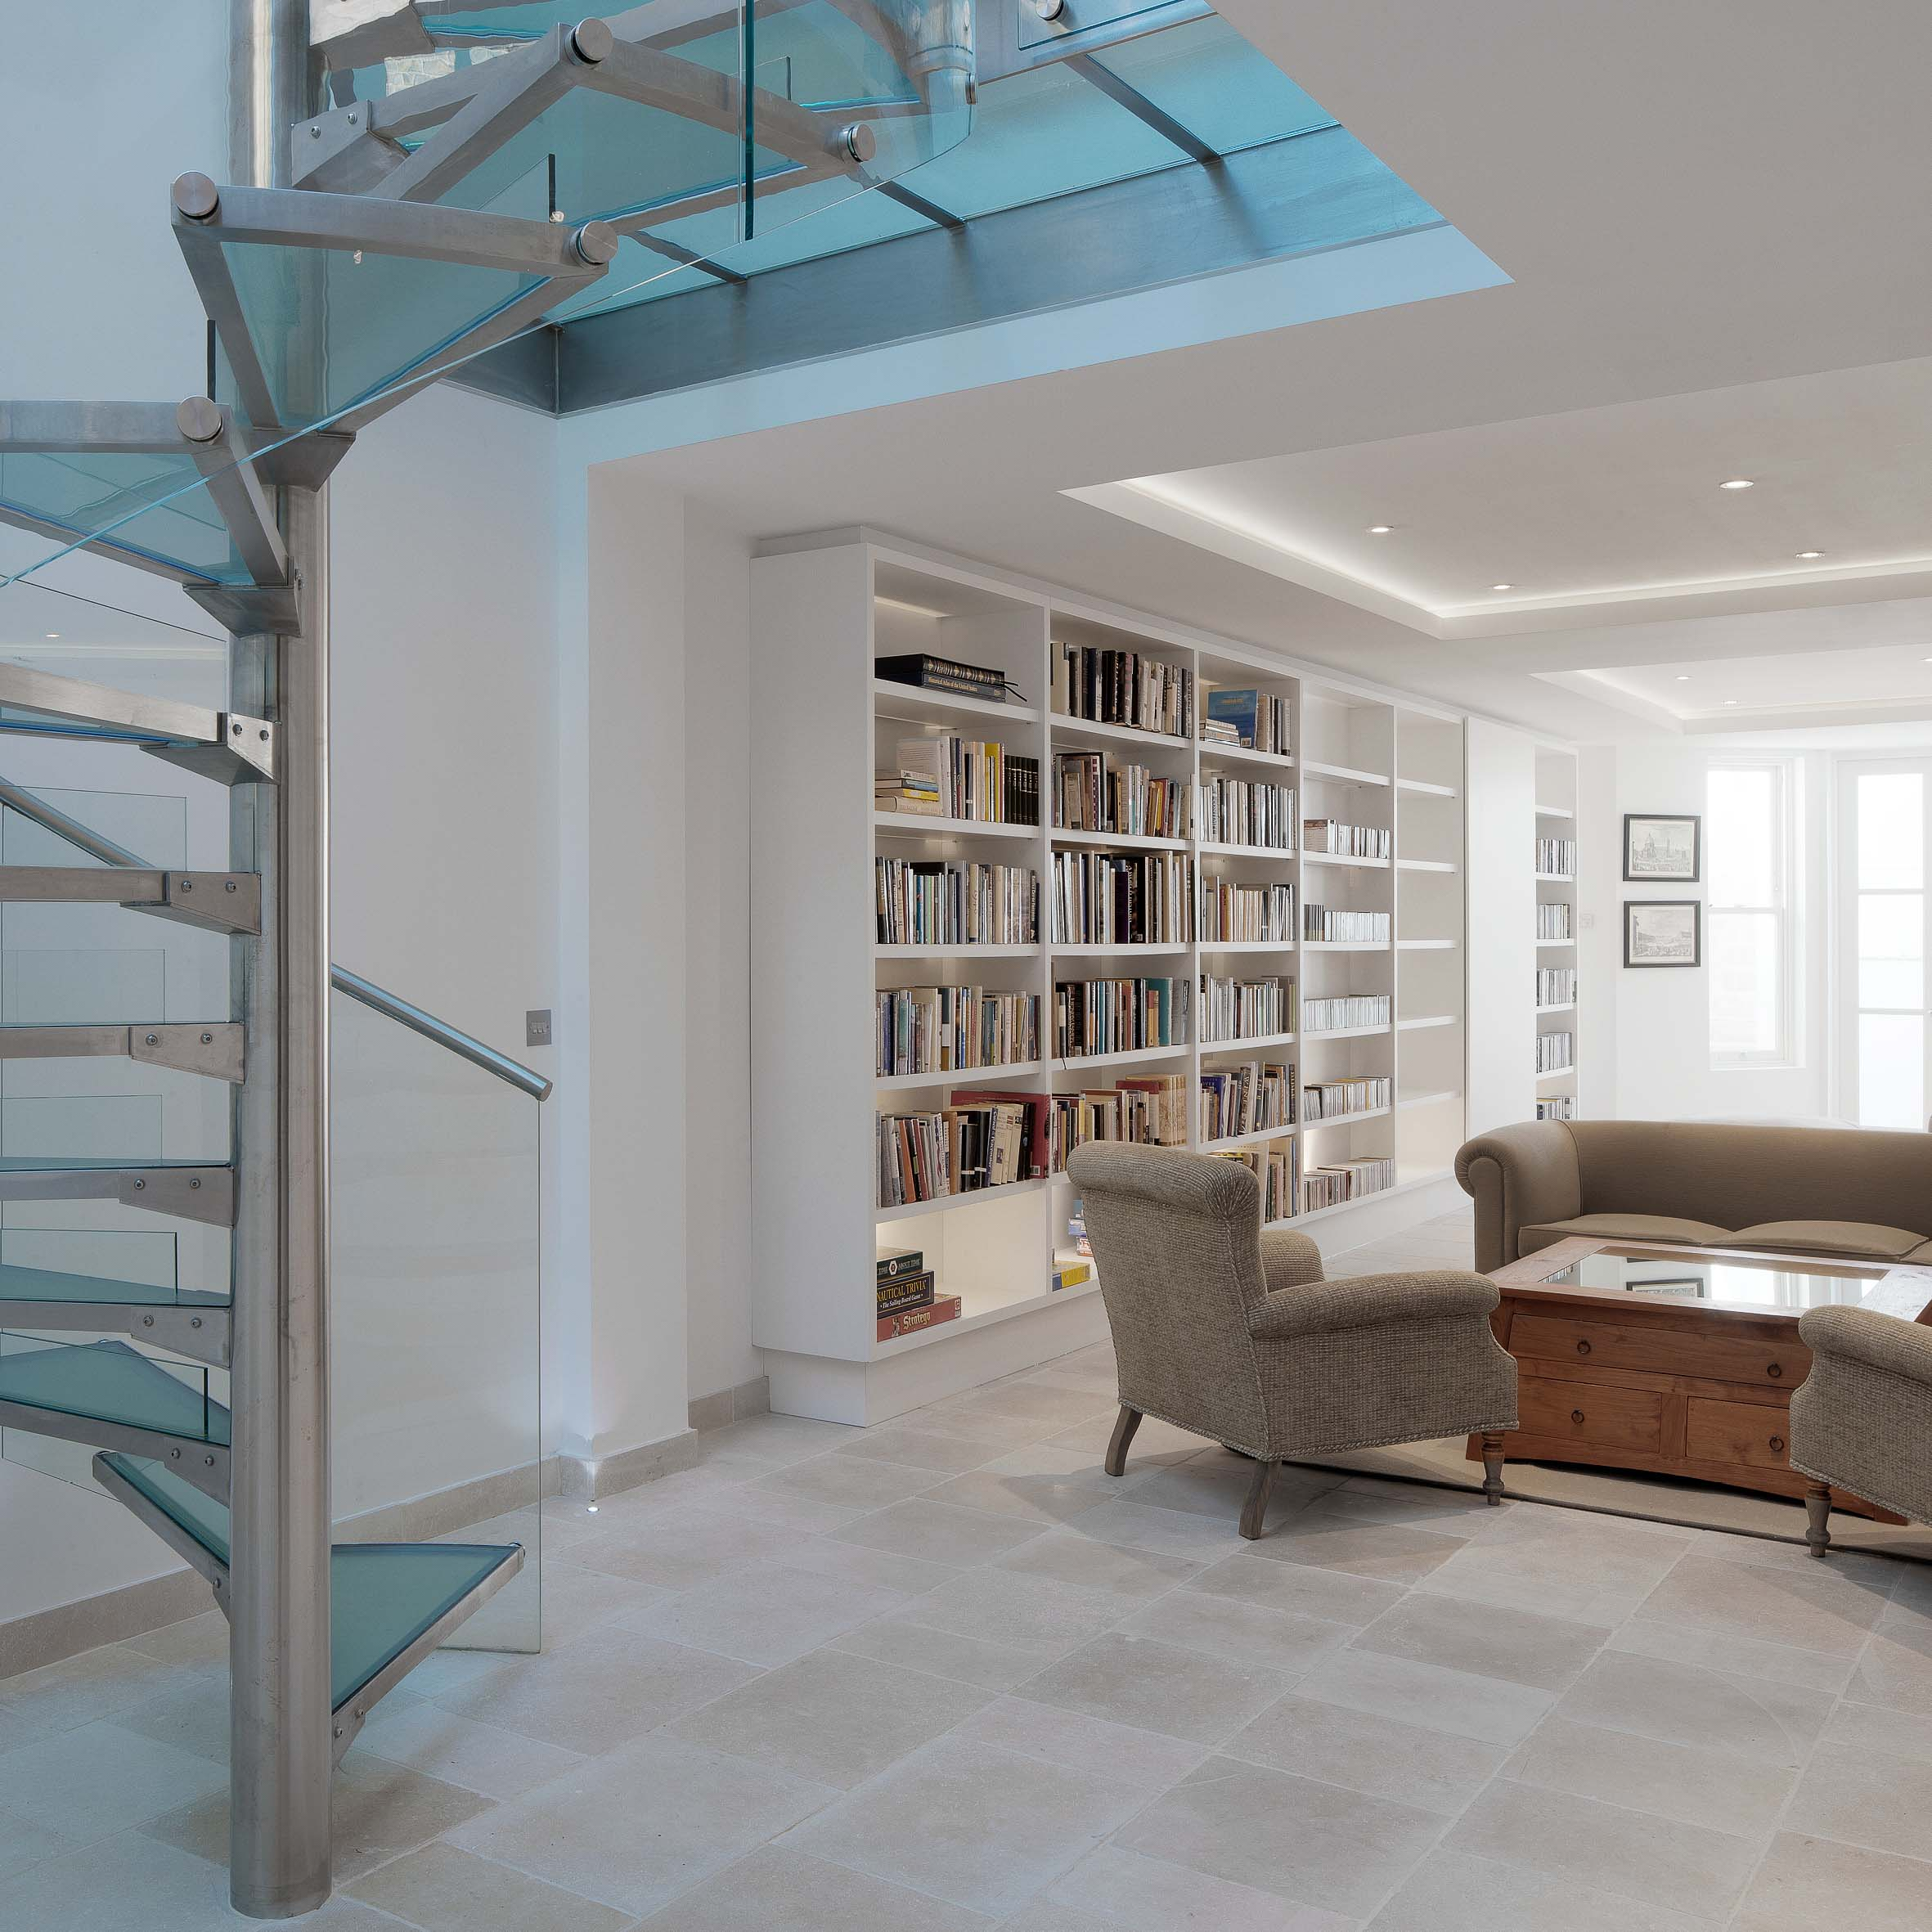 The glass and steel feature staircase and library, living room and coffee table